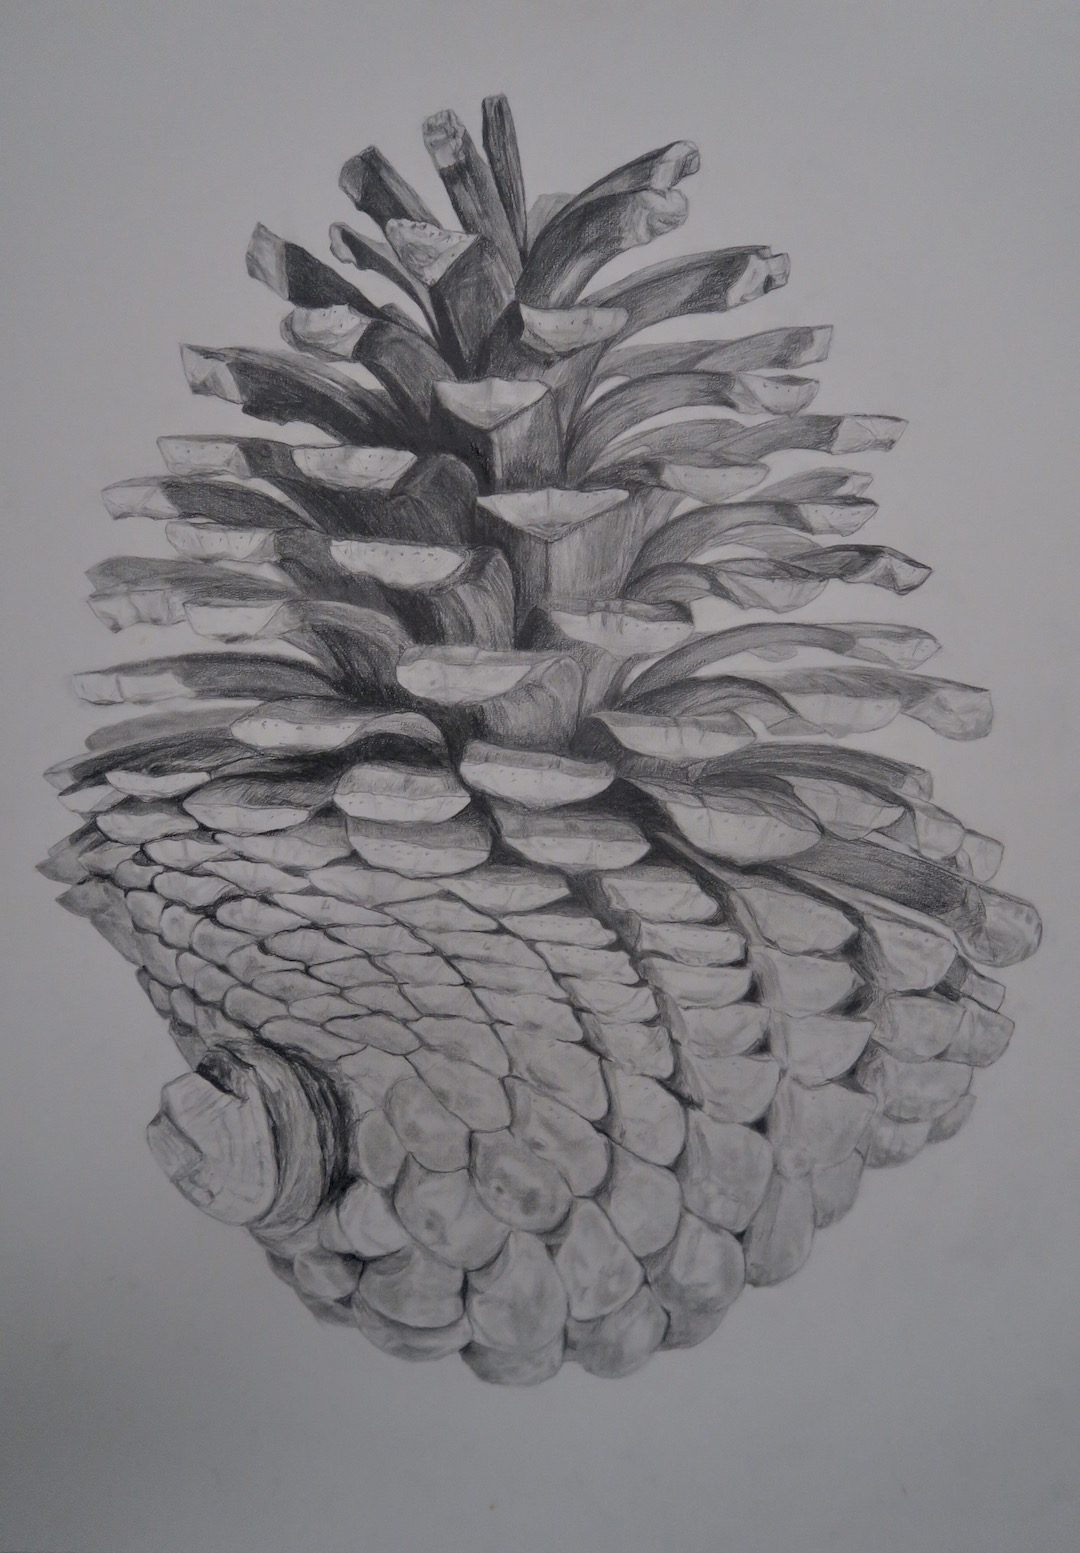 Drawing of Pinecone by Niko Dujmovic